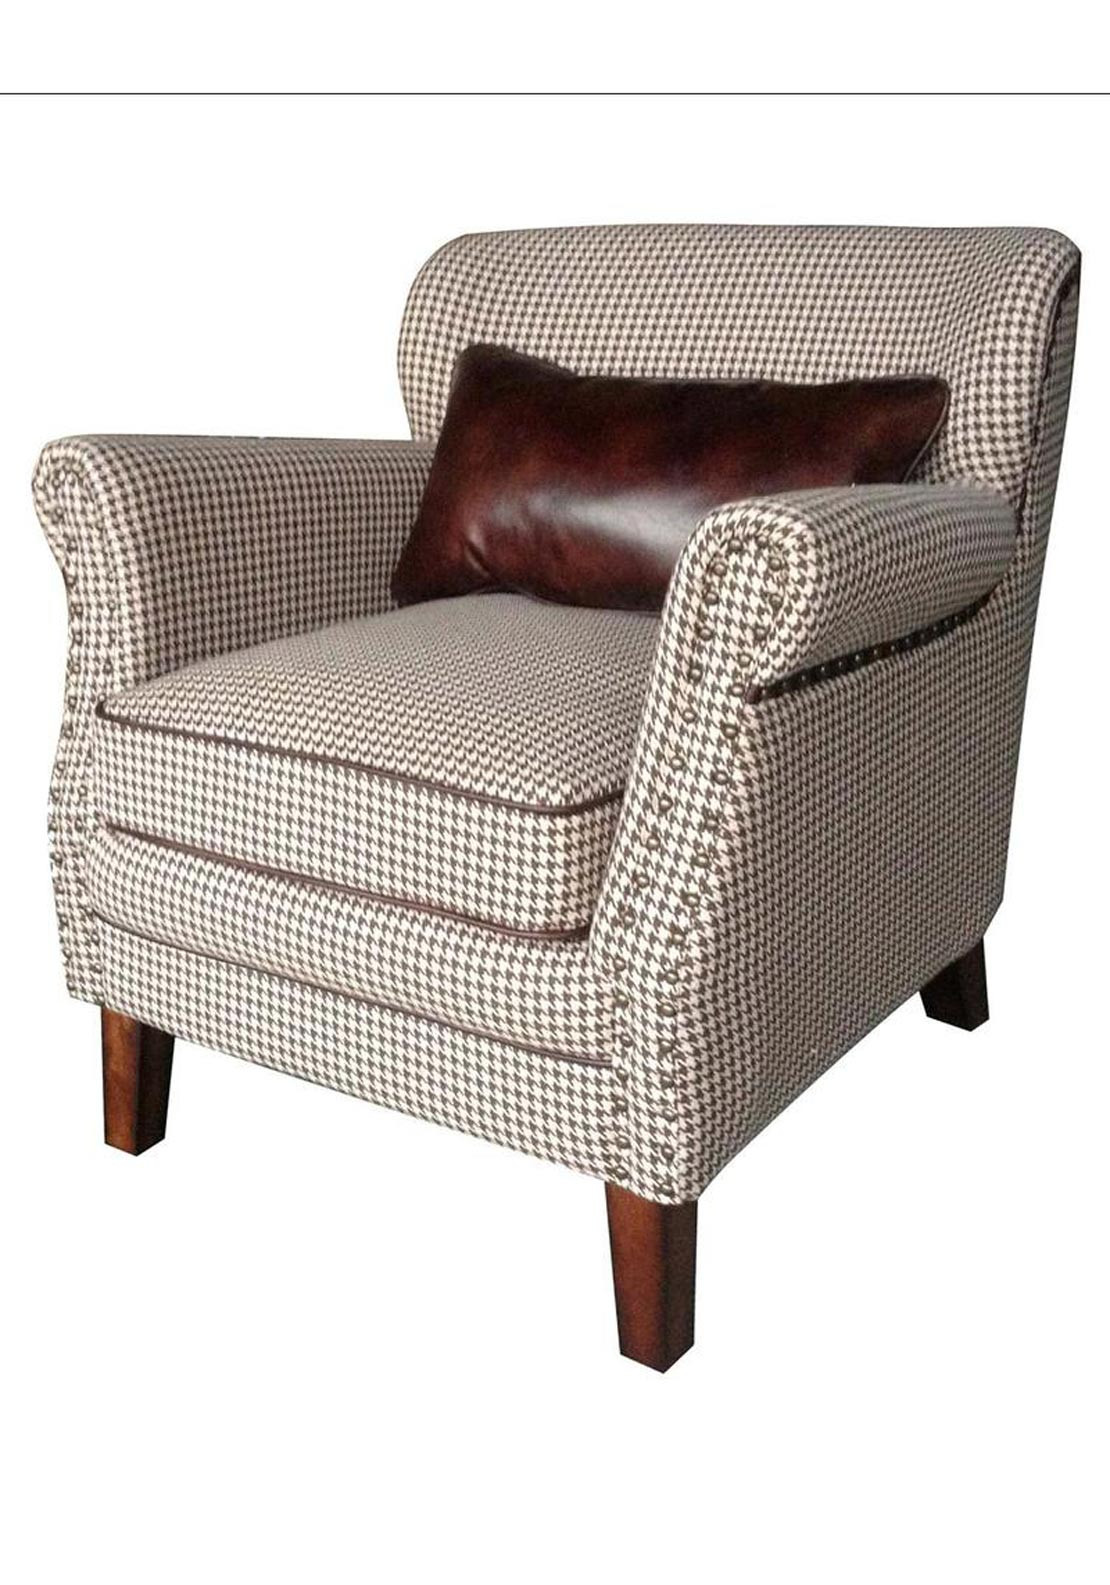 Mindy Brownes Lexi Armchair, Hound Tooth